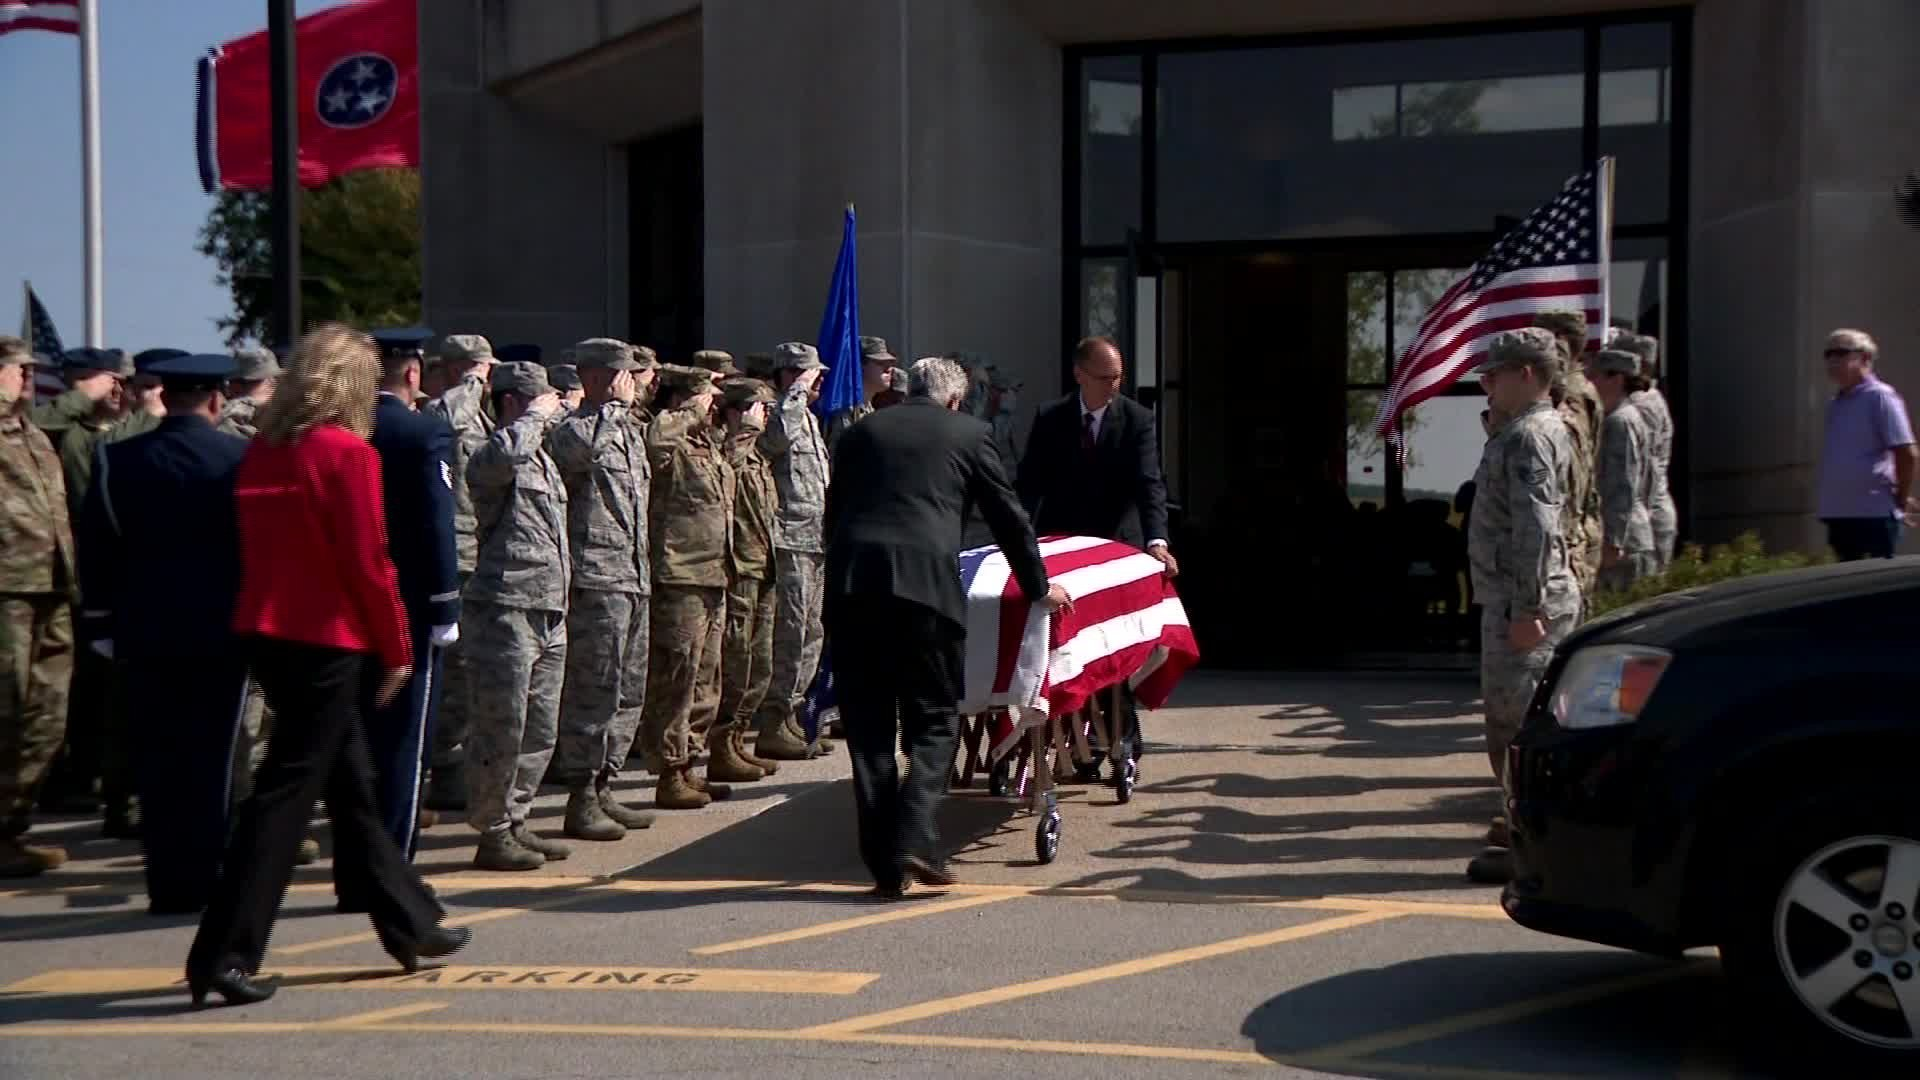 He served in the United States Air Force and strangers packed his funeral to give him the recognition he deserved